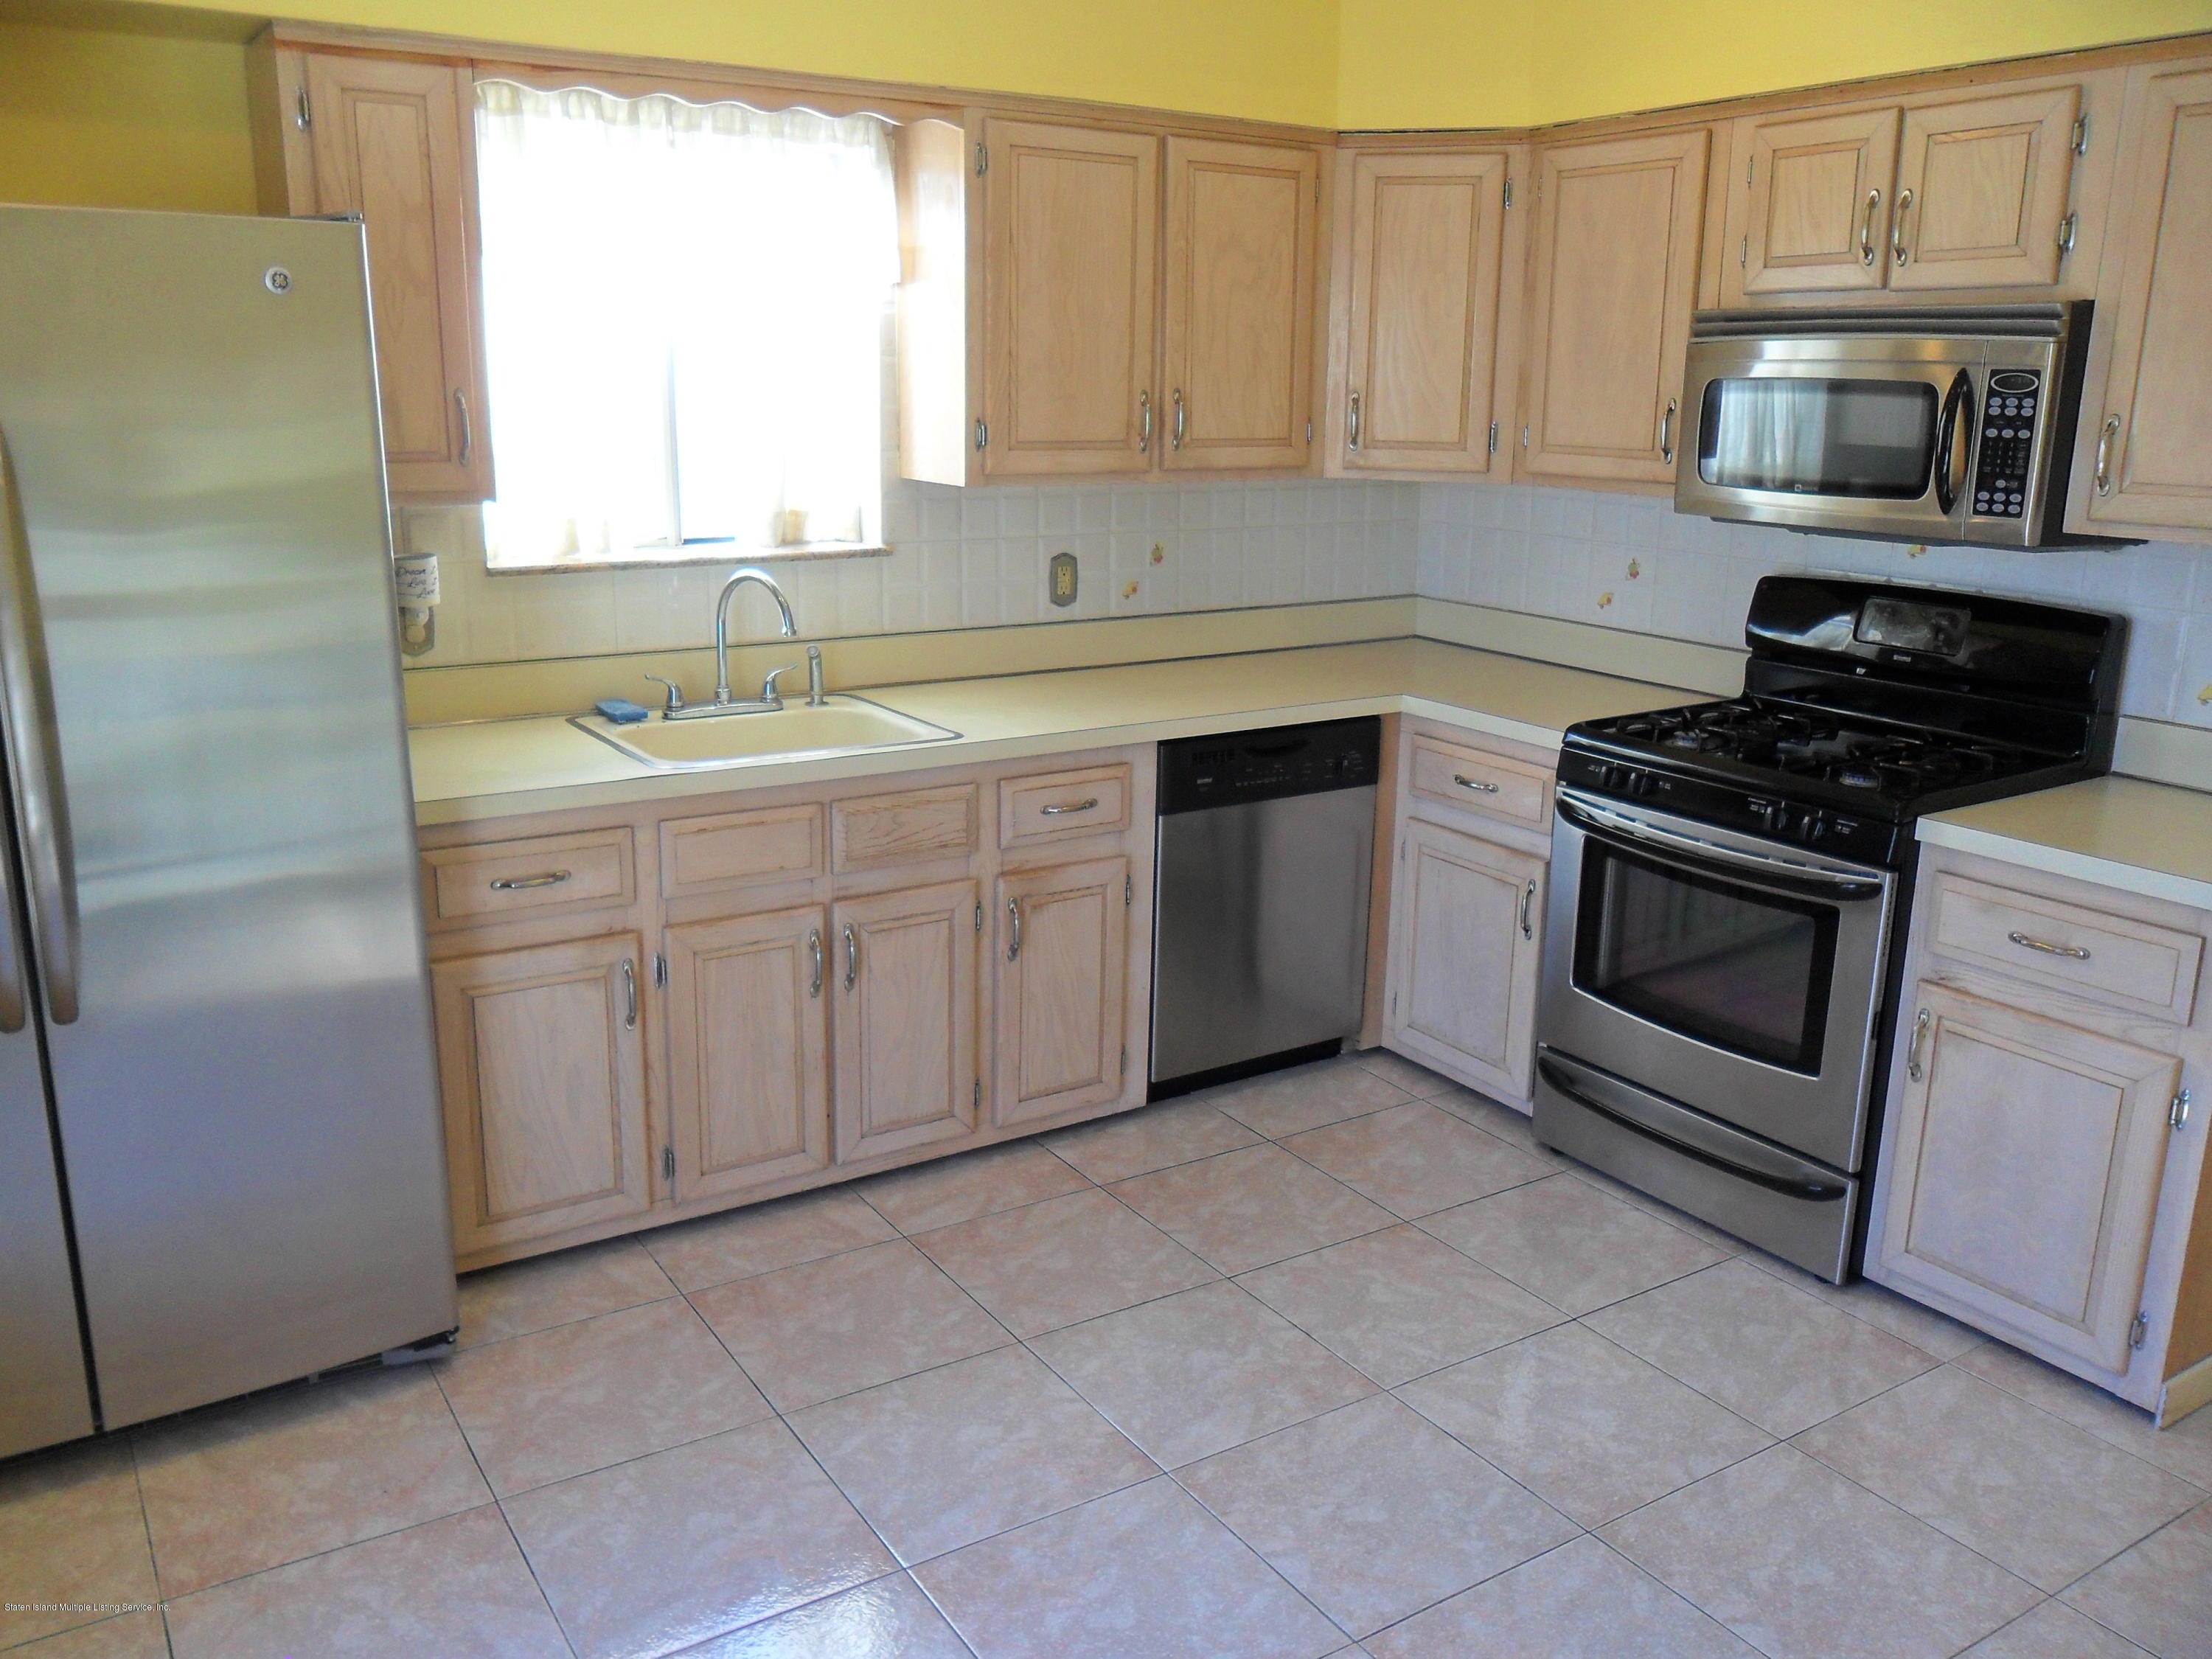 Single Family - Semi-Attached 50 Forest Street  Staten Island, NY 10314, MLS-1127879-13